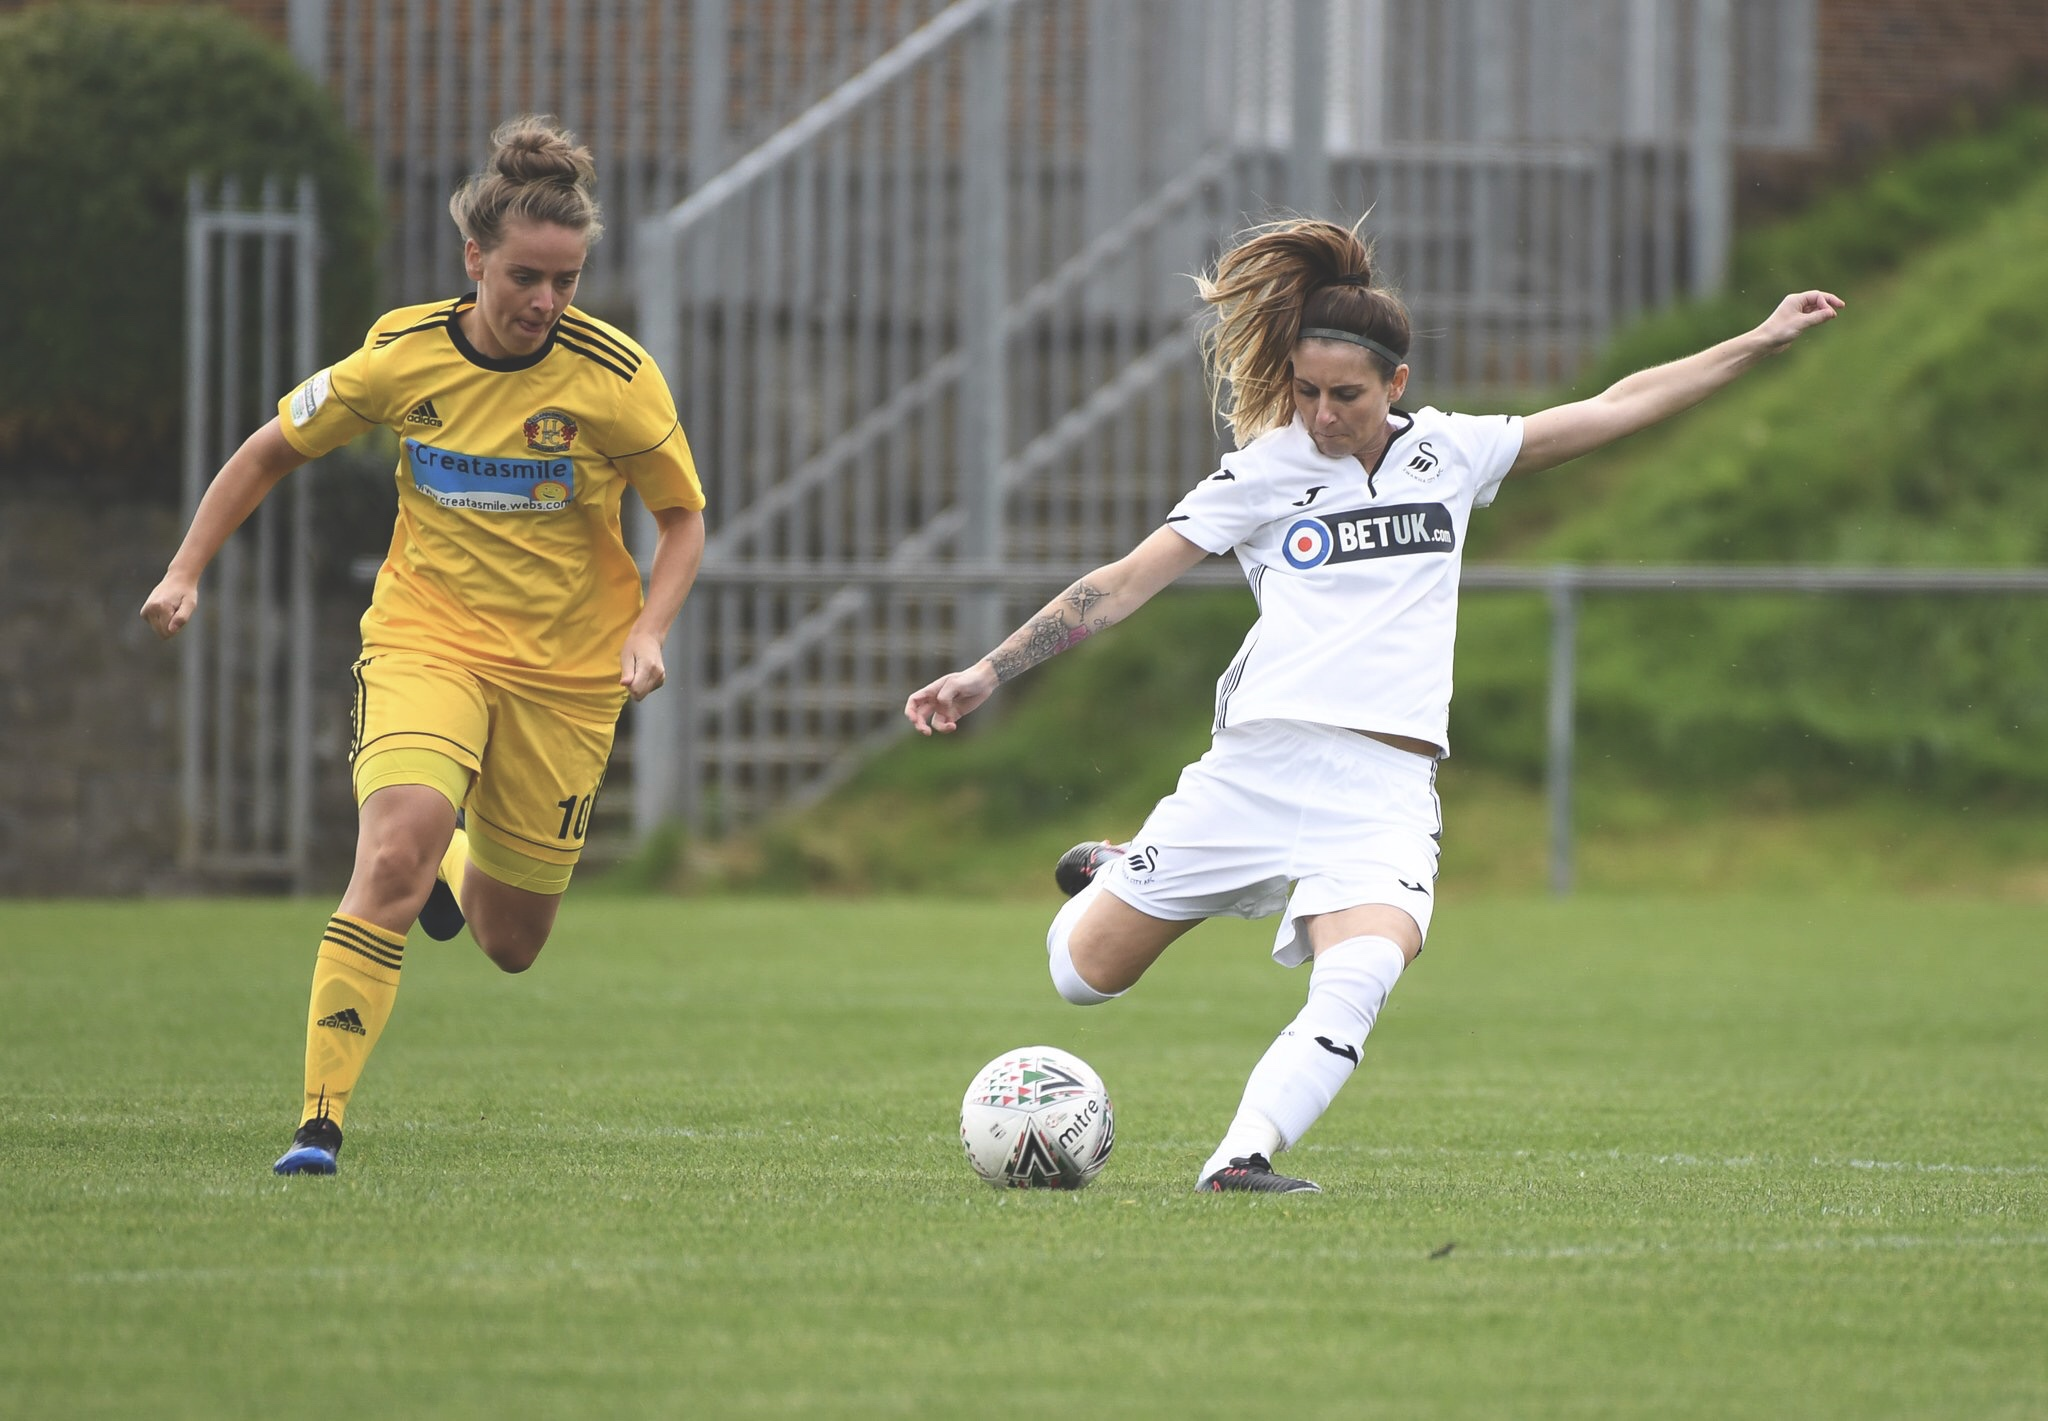 Swansea City's Sarah Adams in action. Photo by @SwanseaLadies